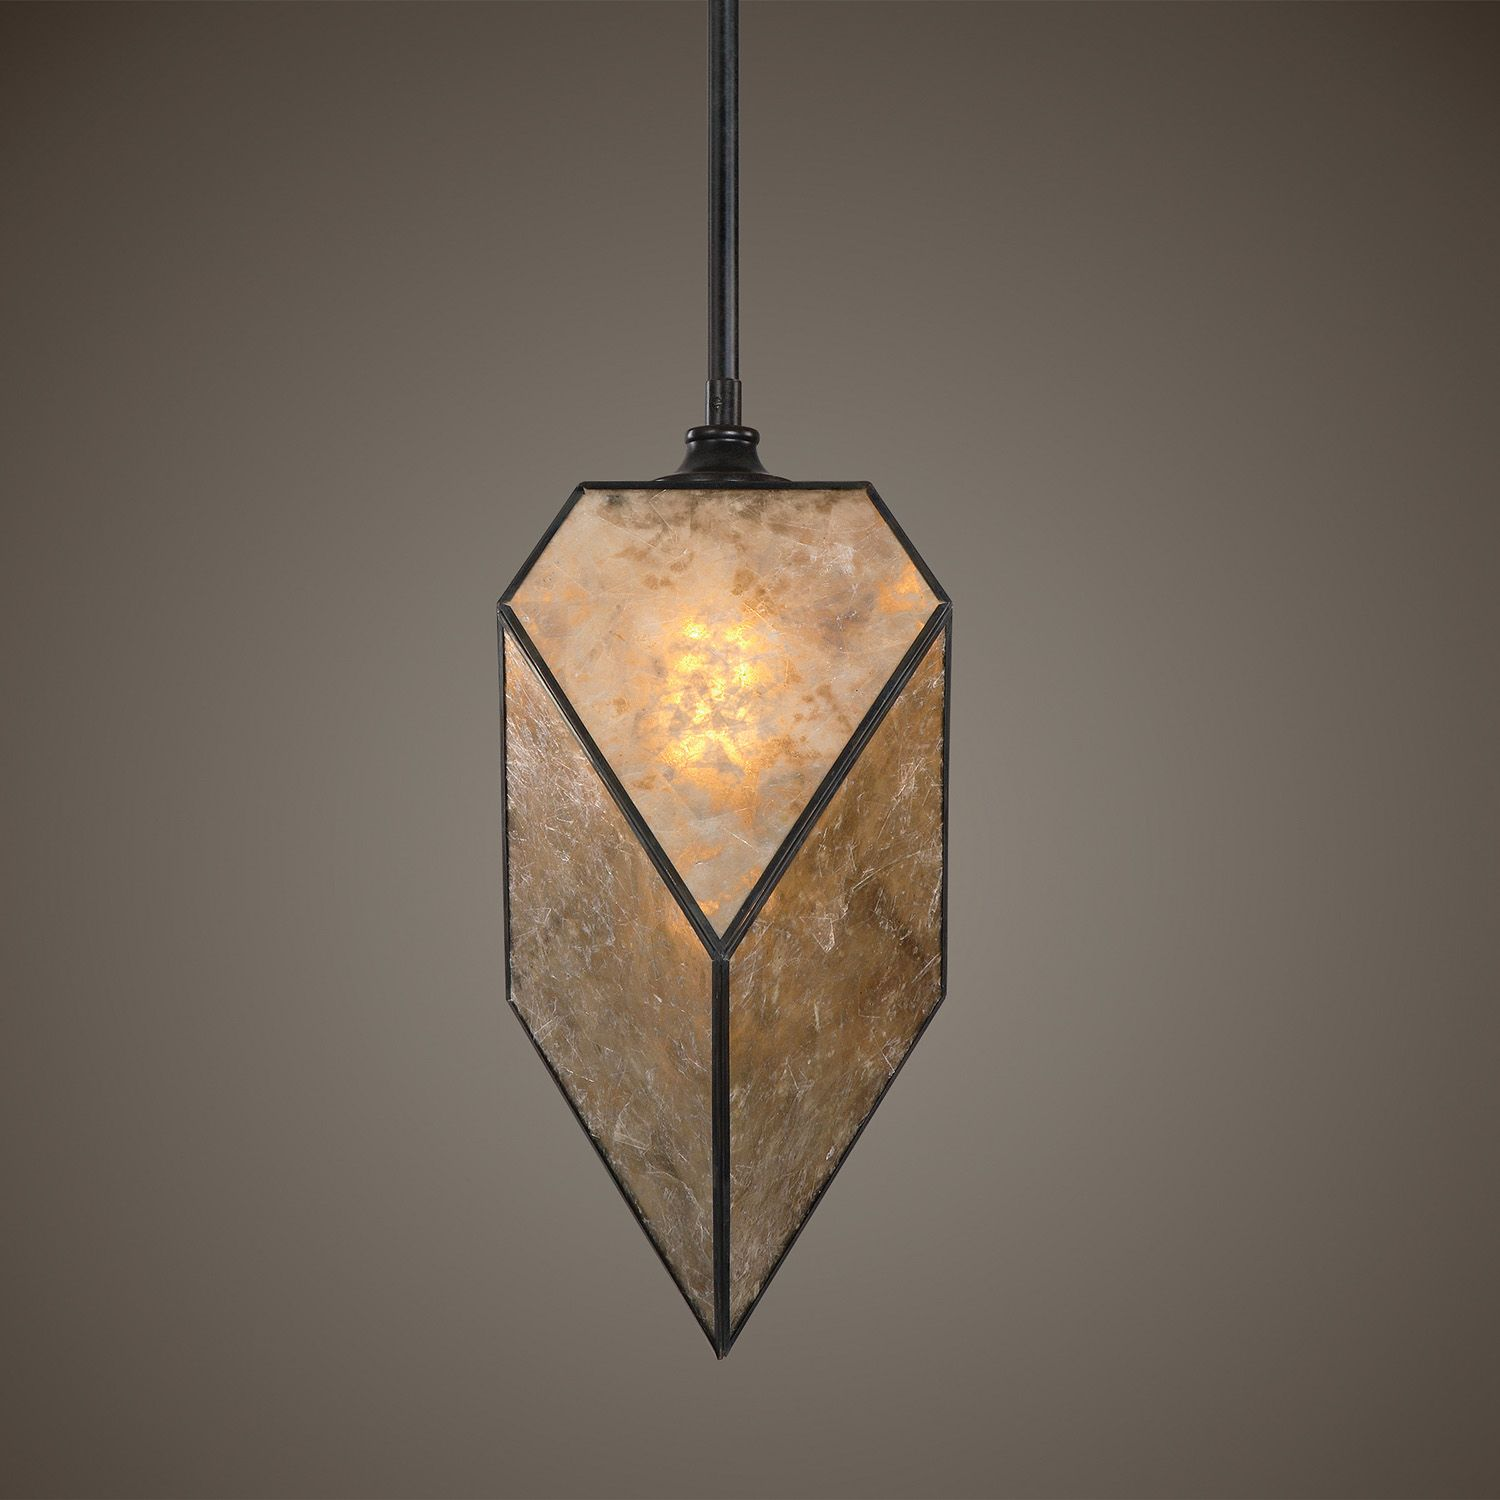 Online Lighting Features Oil Rubbed Bronze And Antiqued Mica Online Lighting